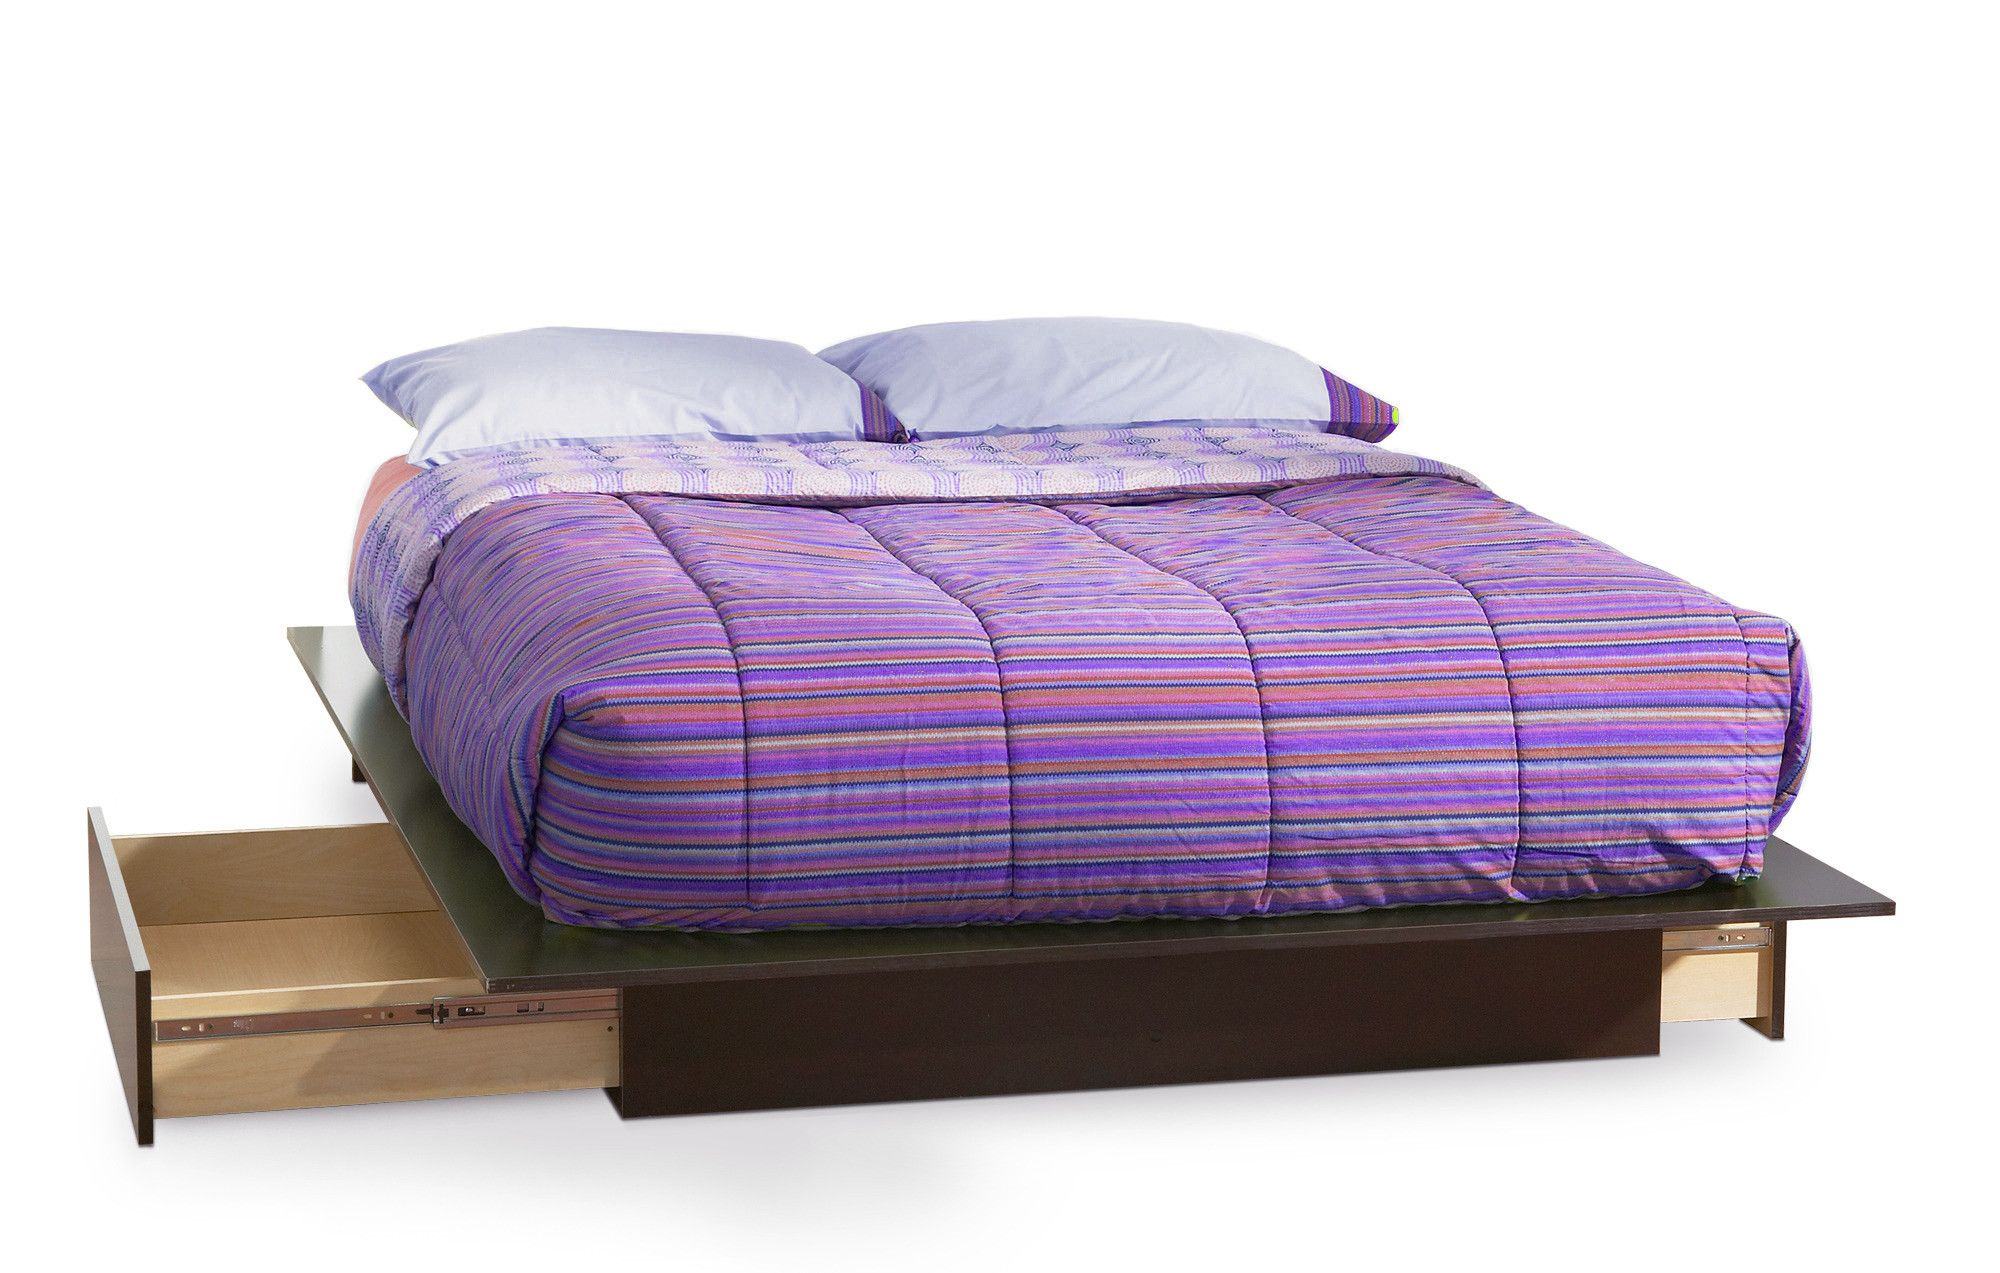 South Shore Step One Full/Queen Storage Platform Bed